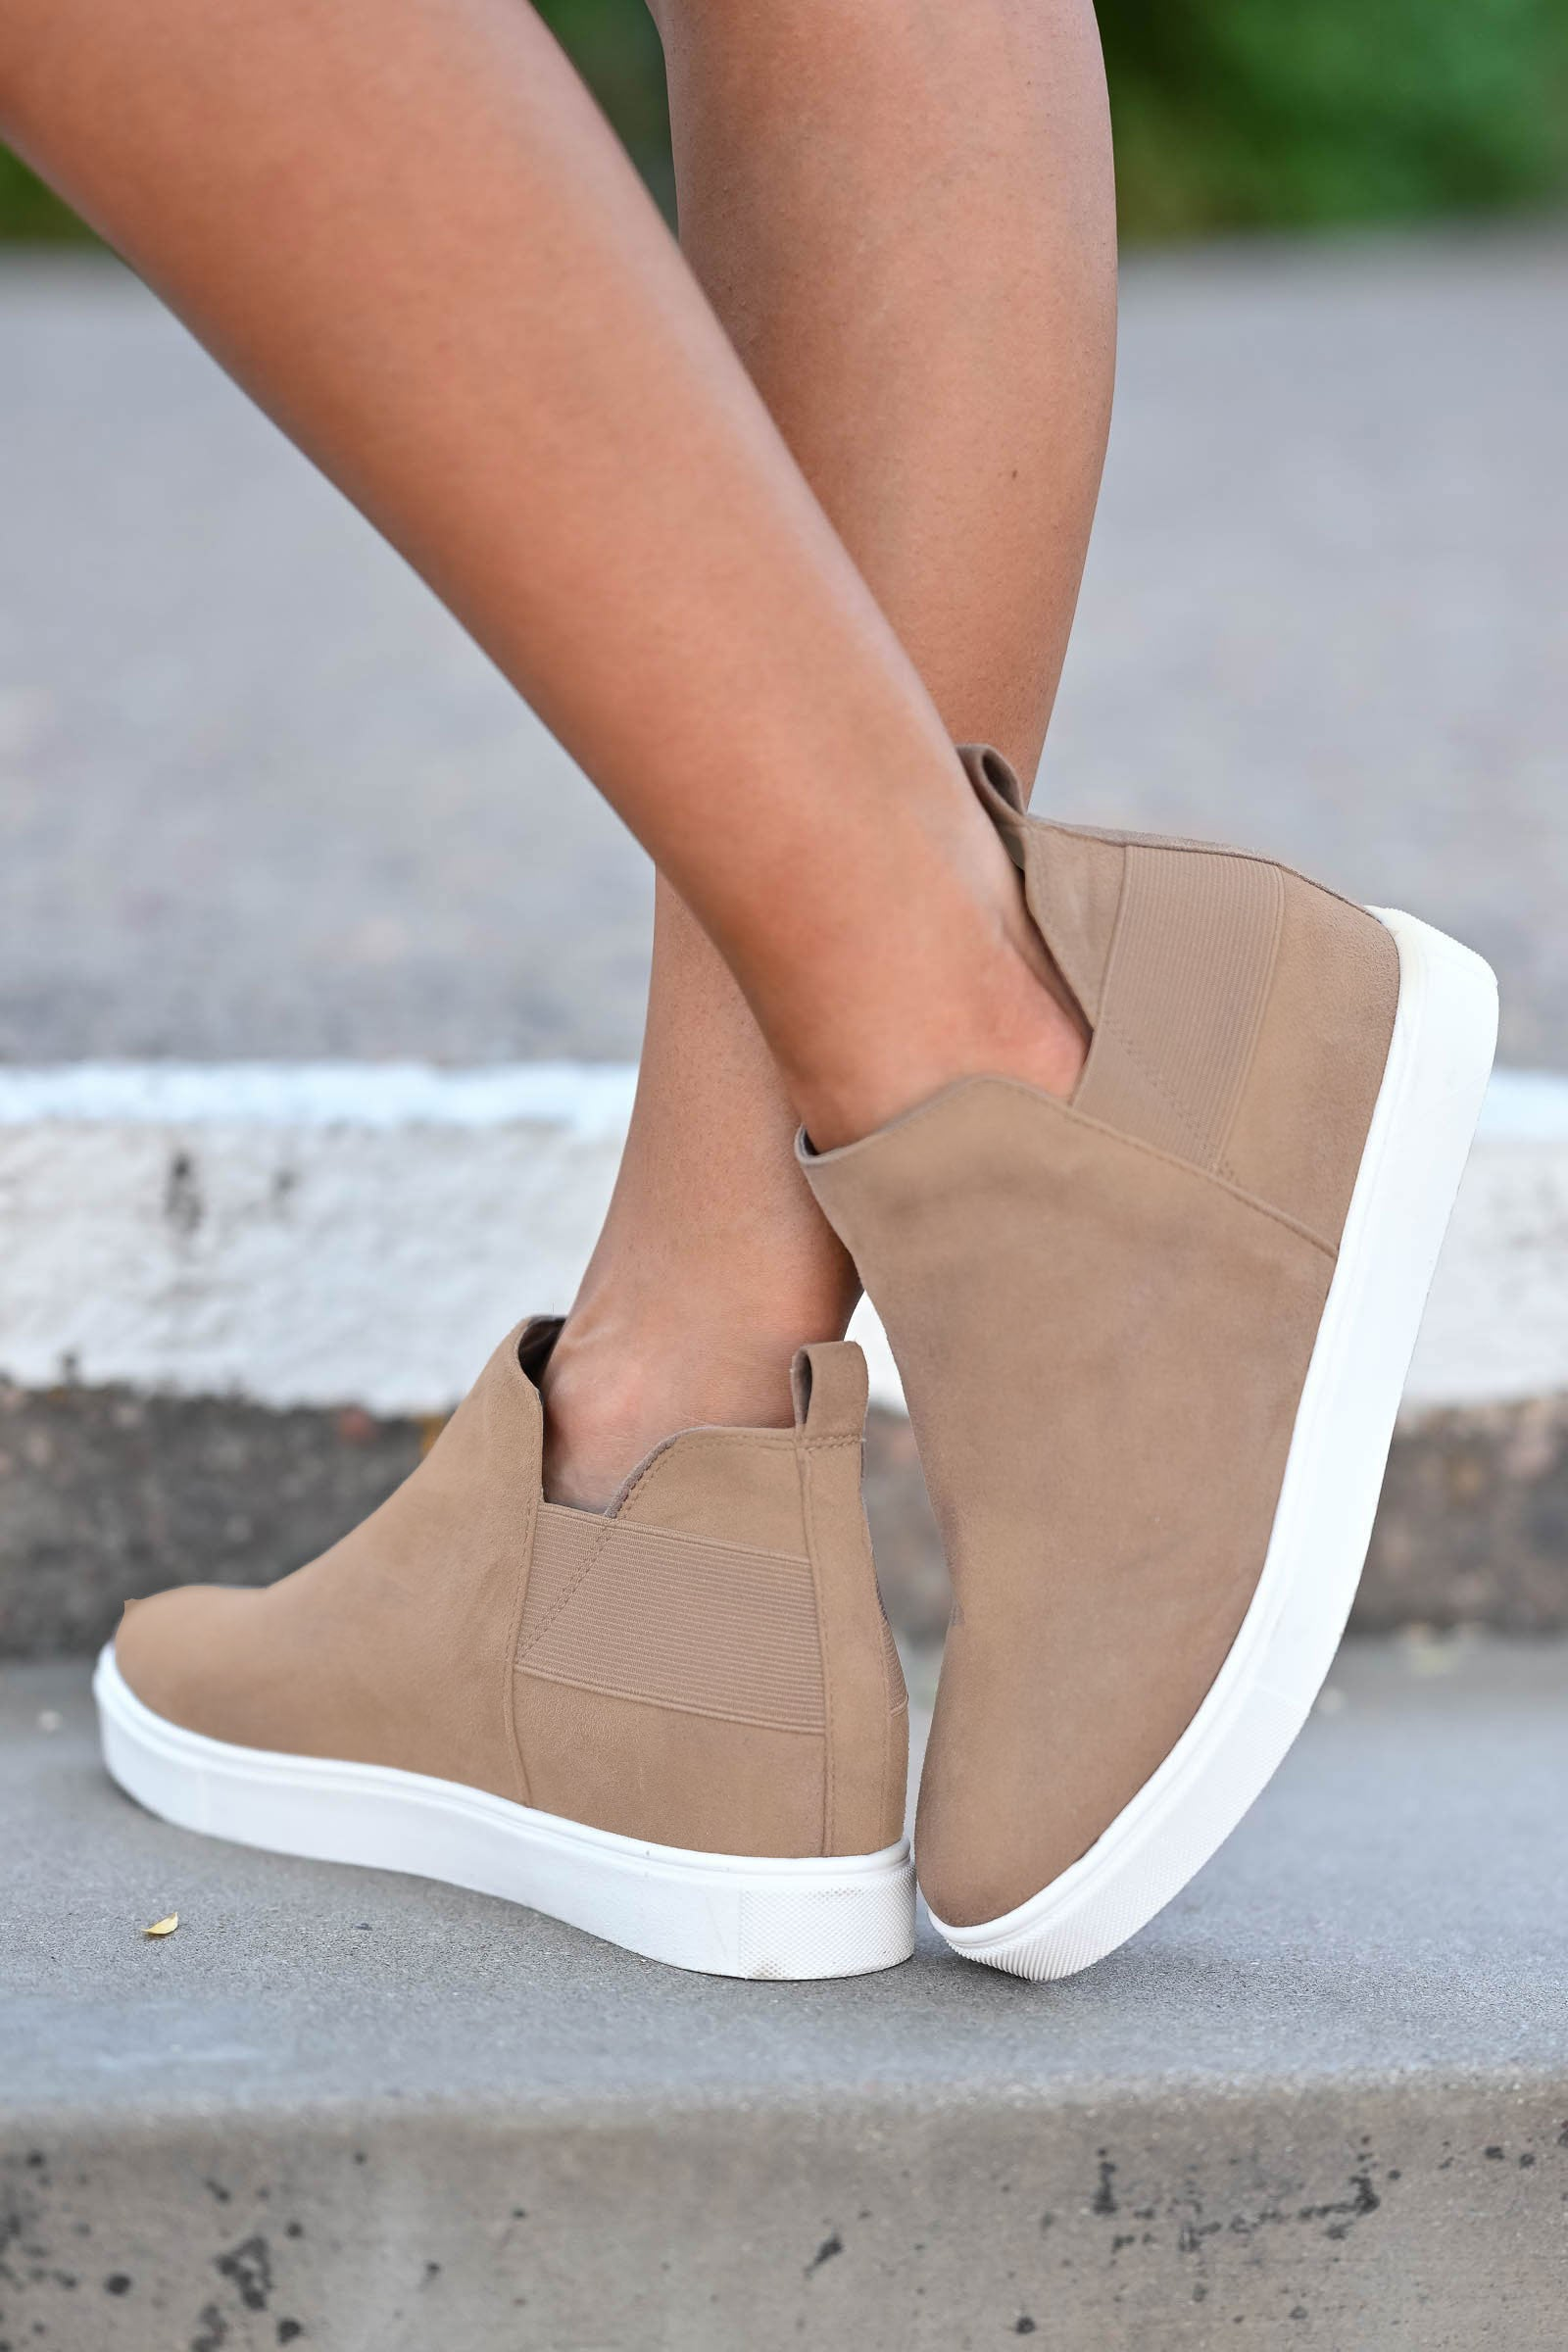 Gone For Now Sneakers - Taupe closet candy women's trendy wedge sneakers 1